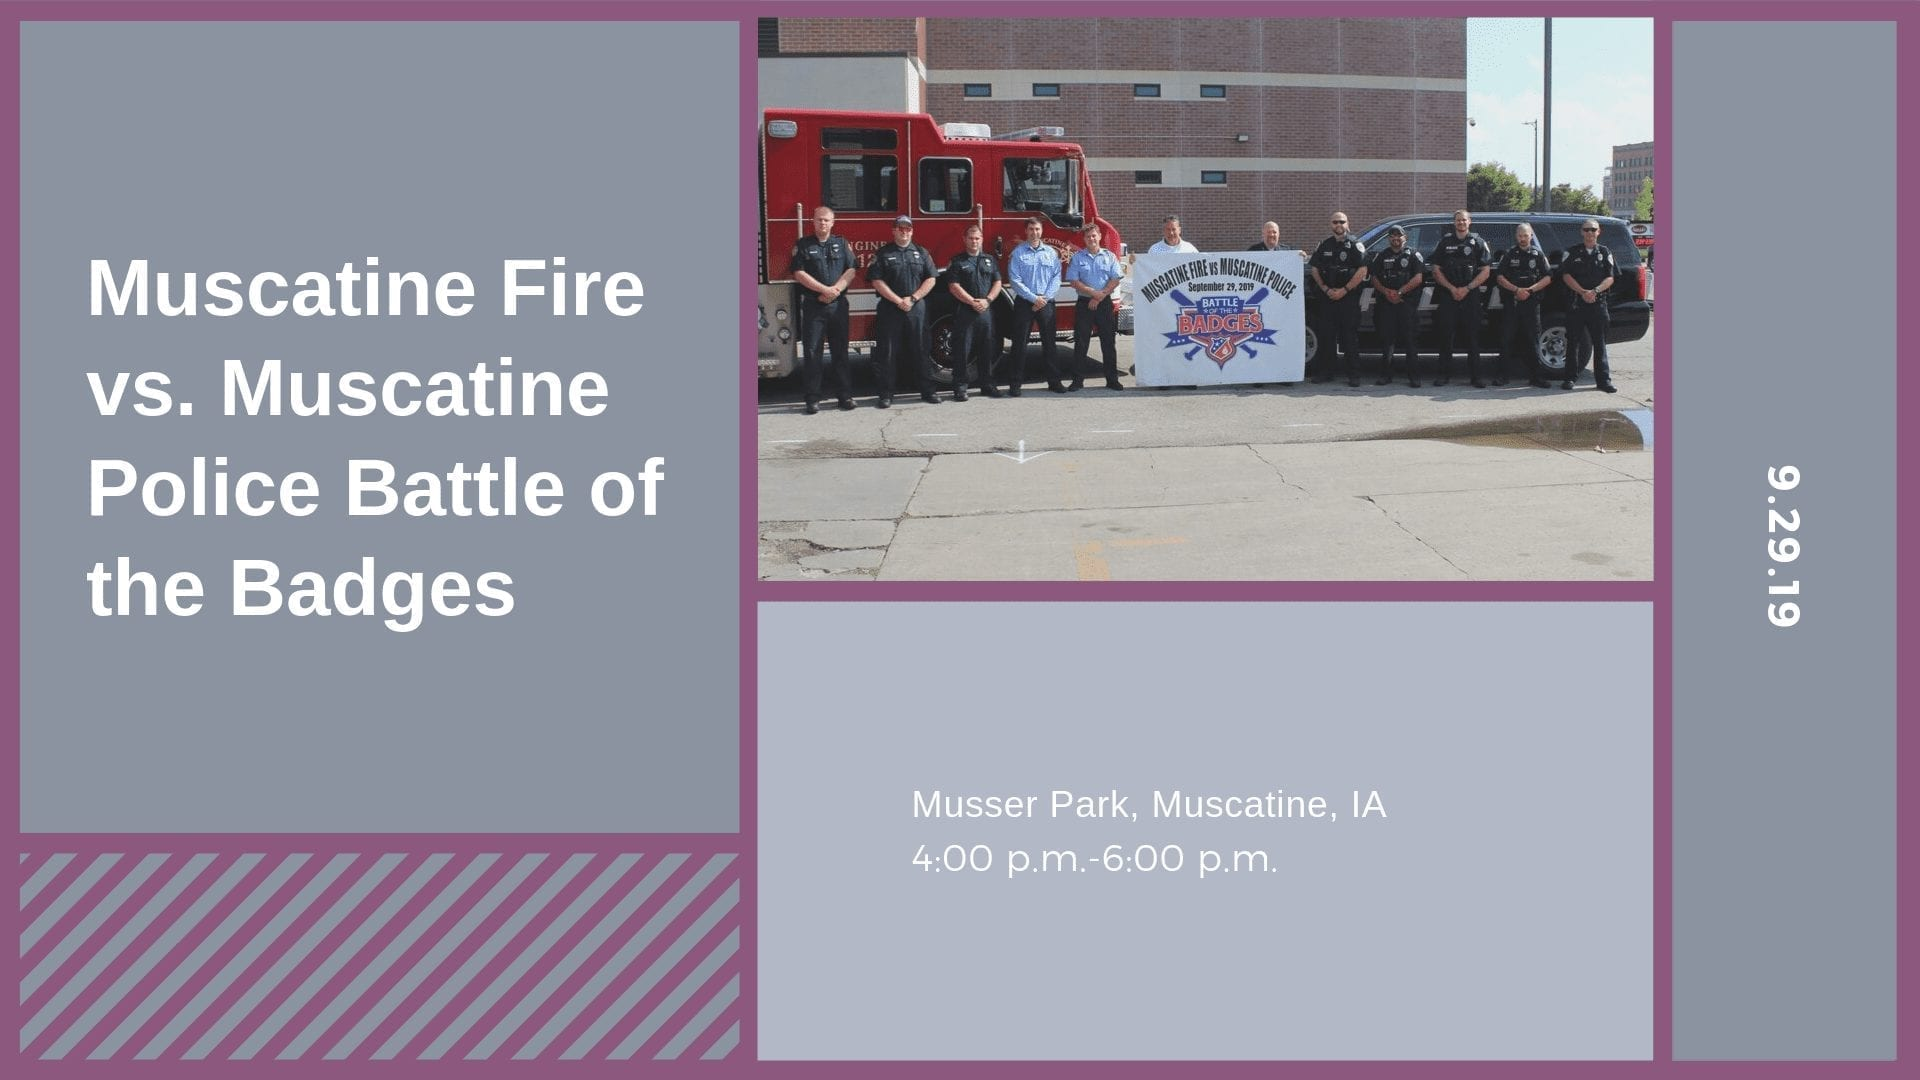 Muscatine Fire vs. Muscatine Police Battle of the Badges